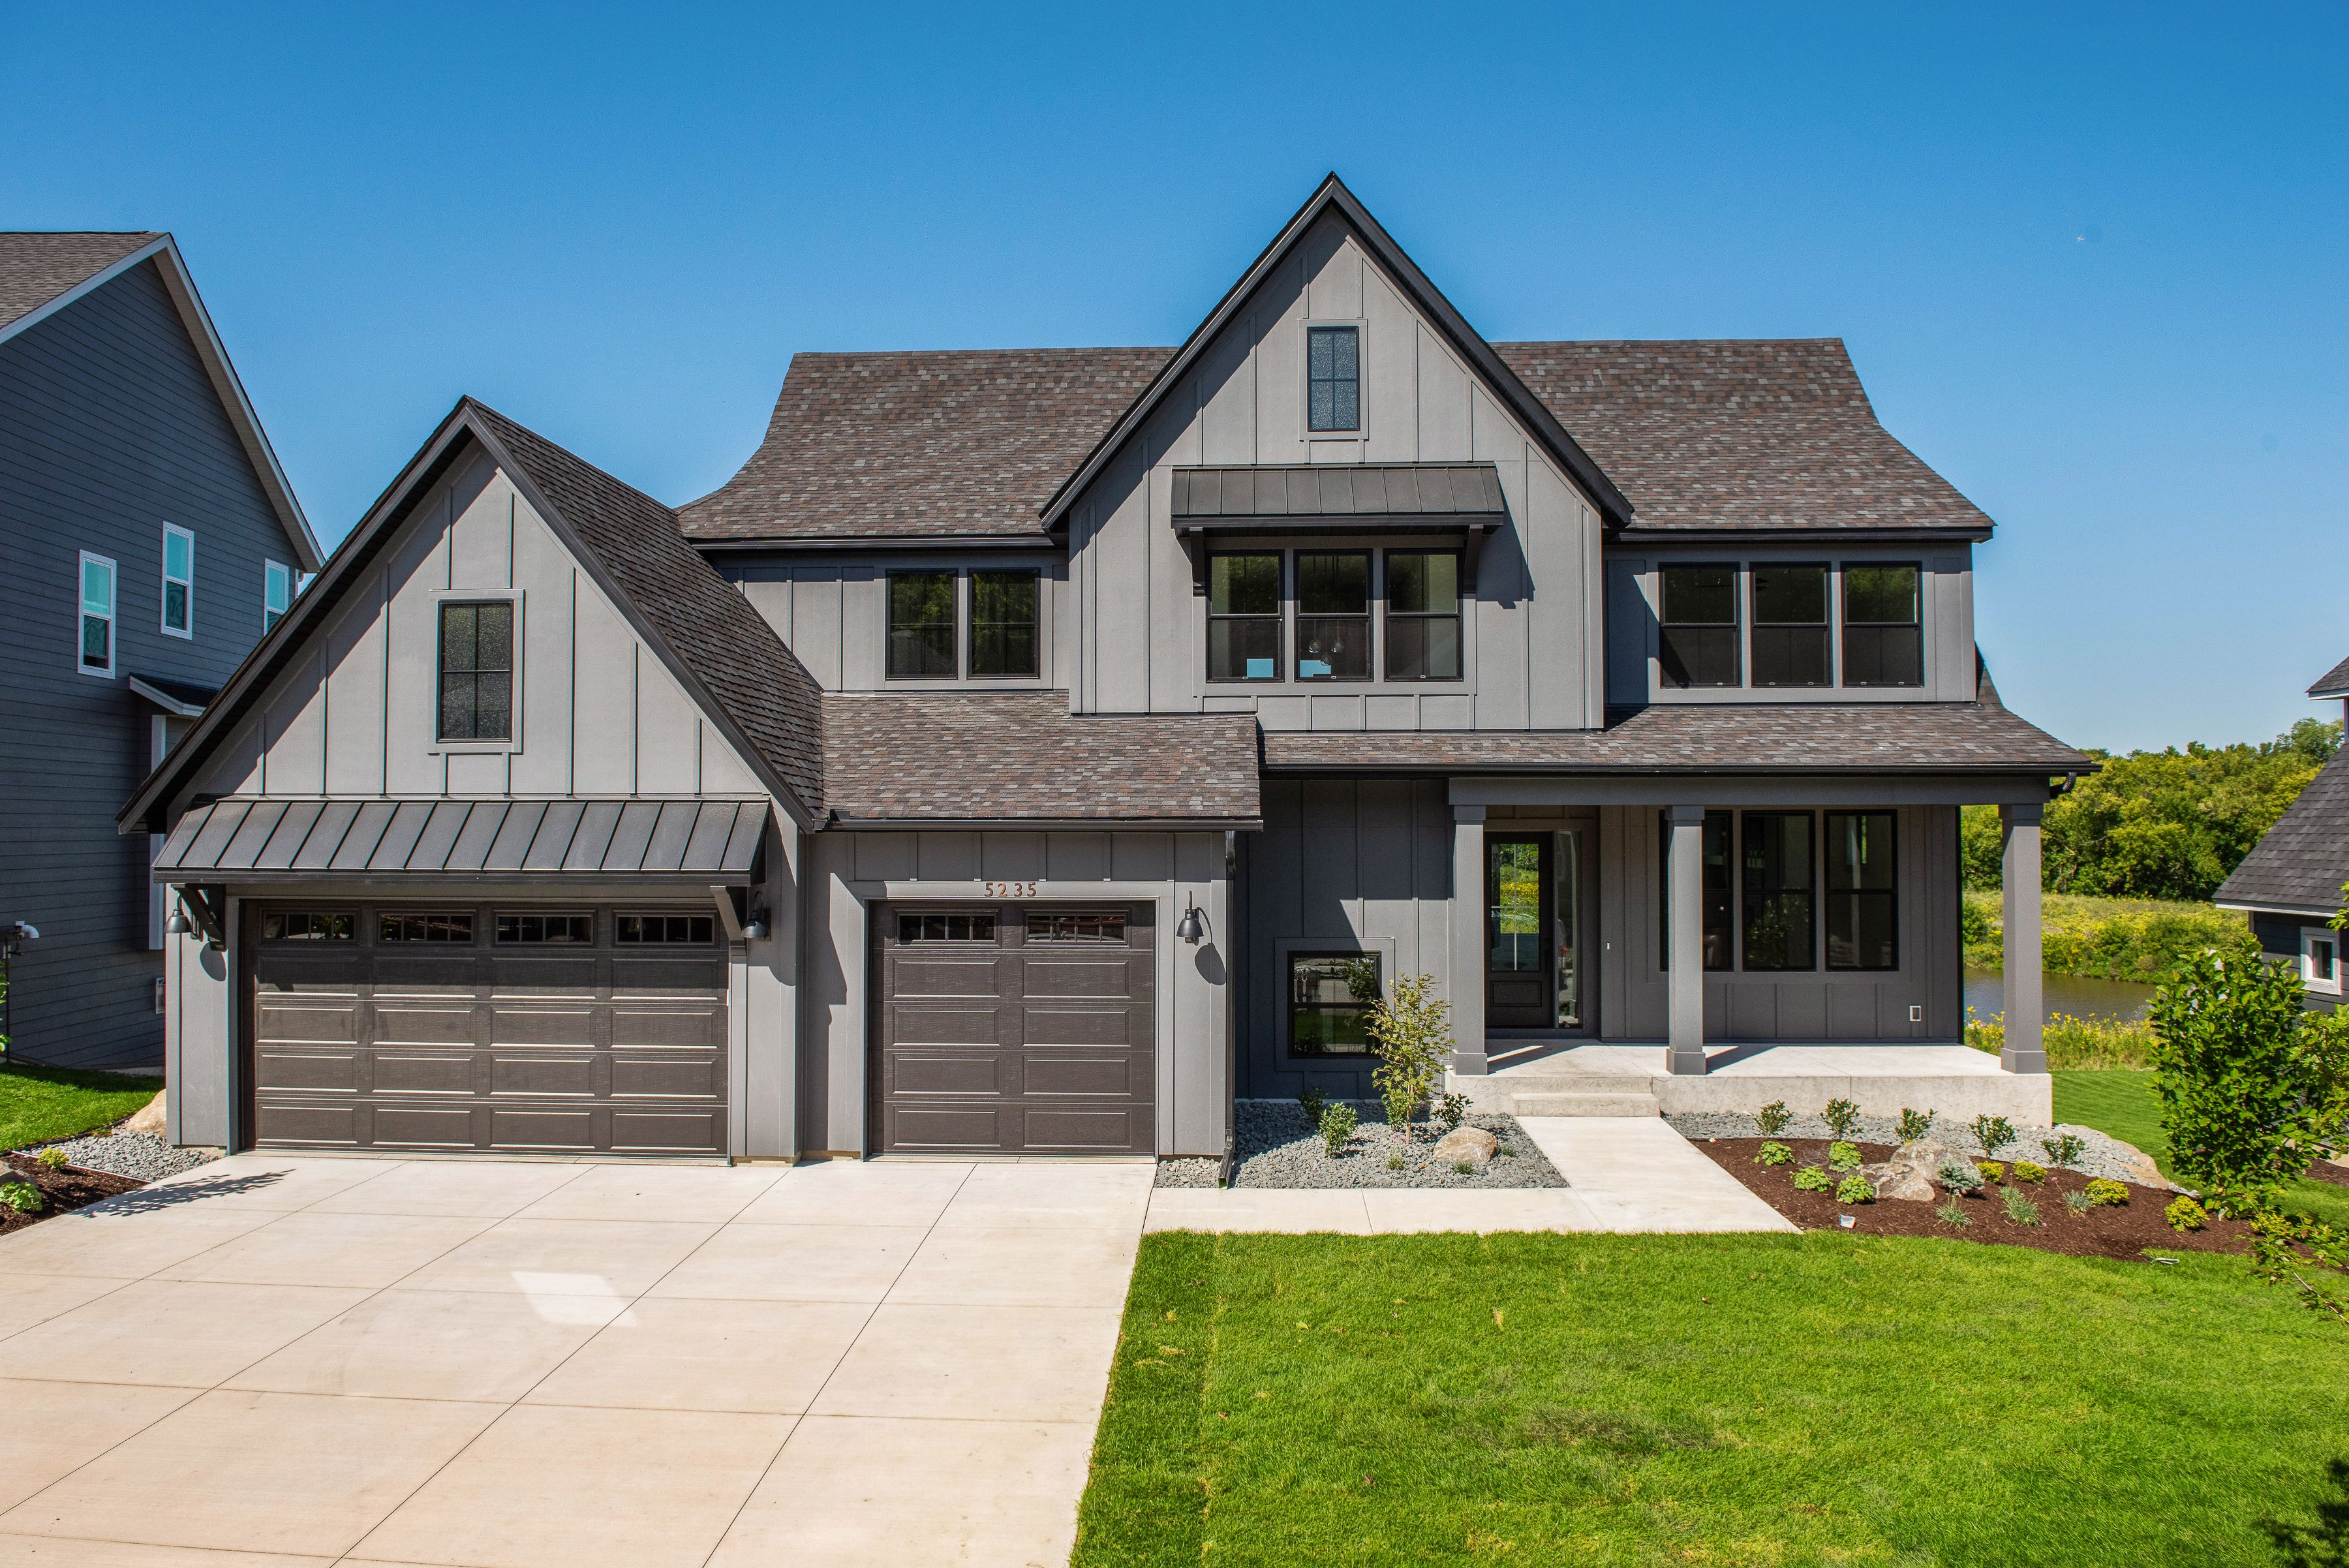 Custom Home Westpoint Sport In 2020 Gray House Exterior Grey Exterior House Colors Exterior Paint Colors For House